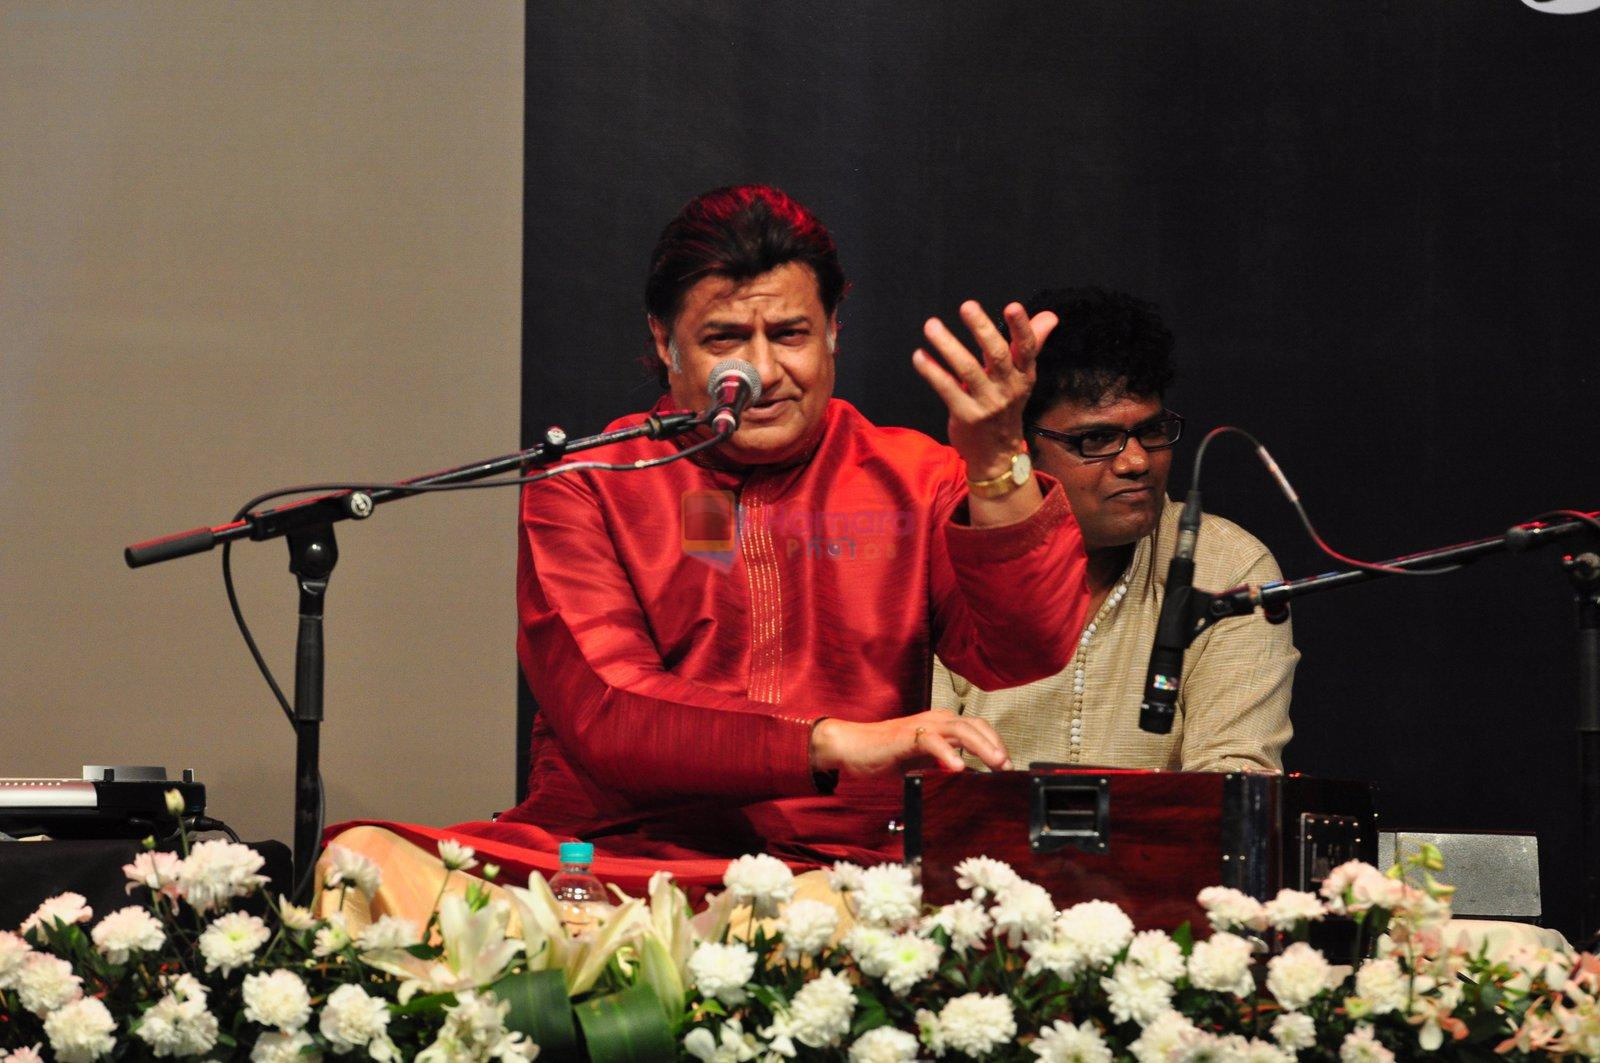 Anup Jalota at Jagjit Singh tribute concert with Tum Bin 2 team and T-Series on 10th Oct 2016